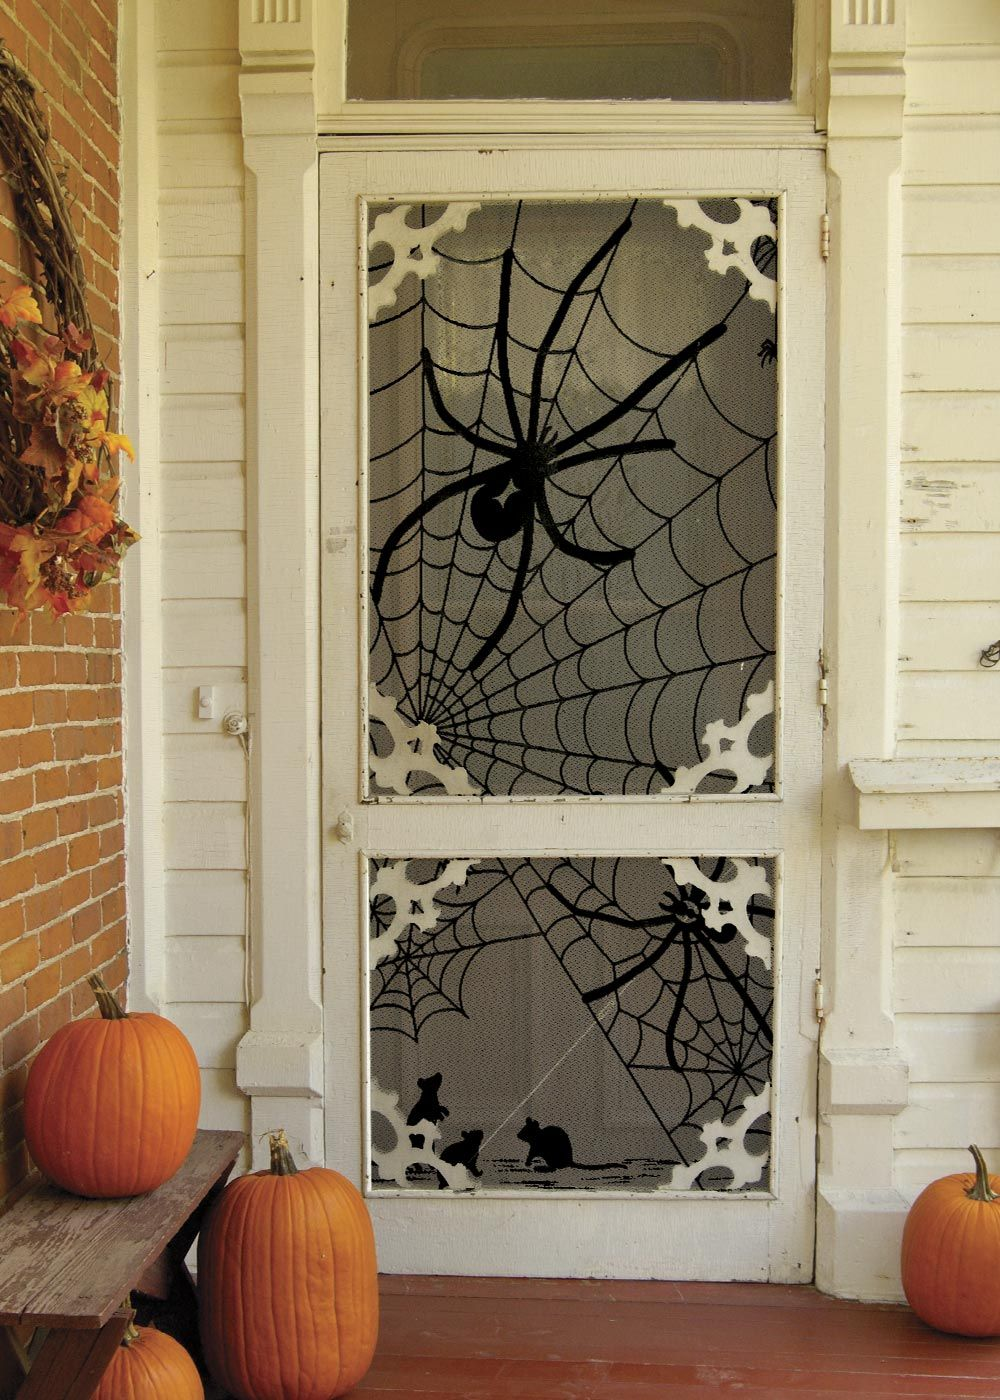 halloween door decorating ideas Spooky Halloween Door Decorations - Halloween Door Decorations Ideas